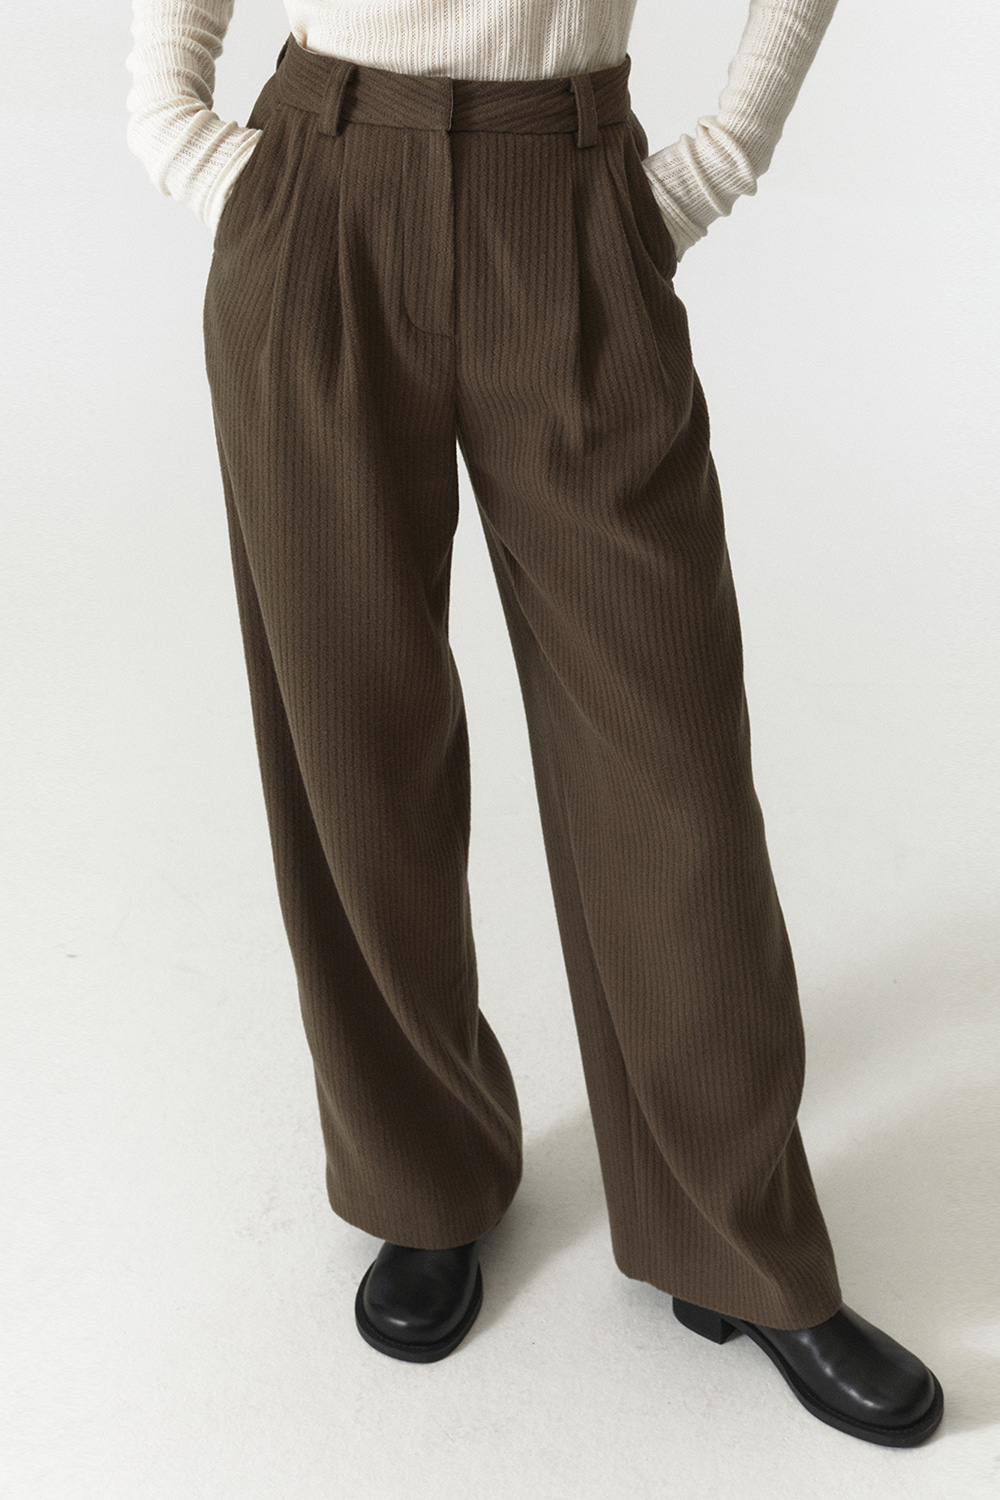 Wool Over Pants Women JA [Dusty Beige]